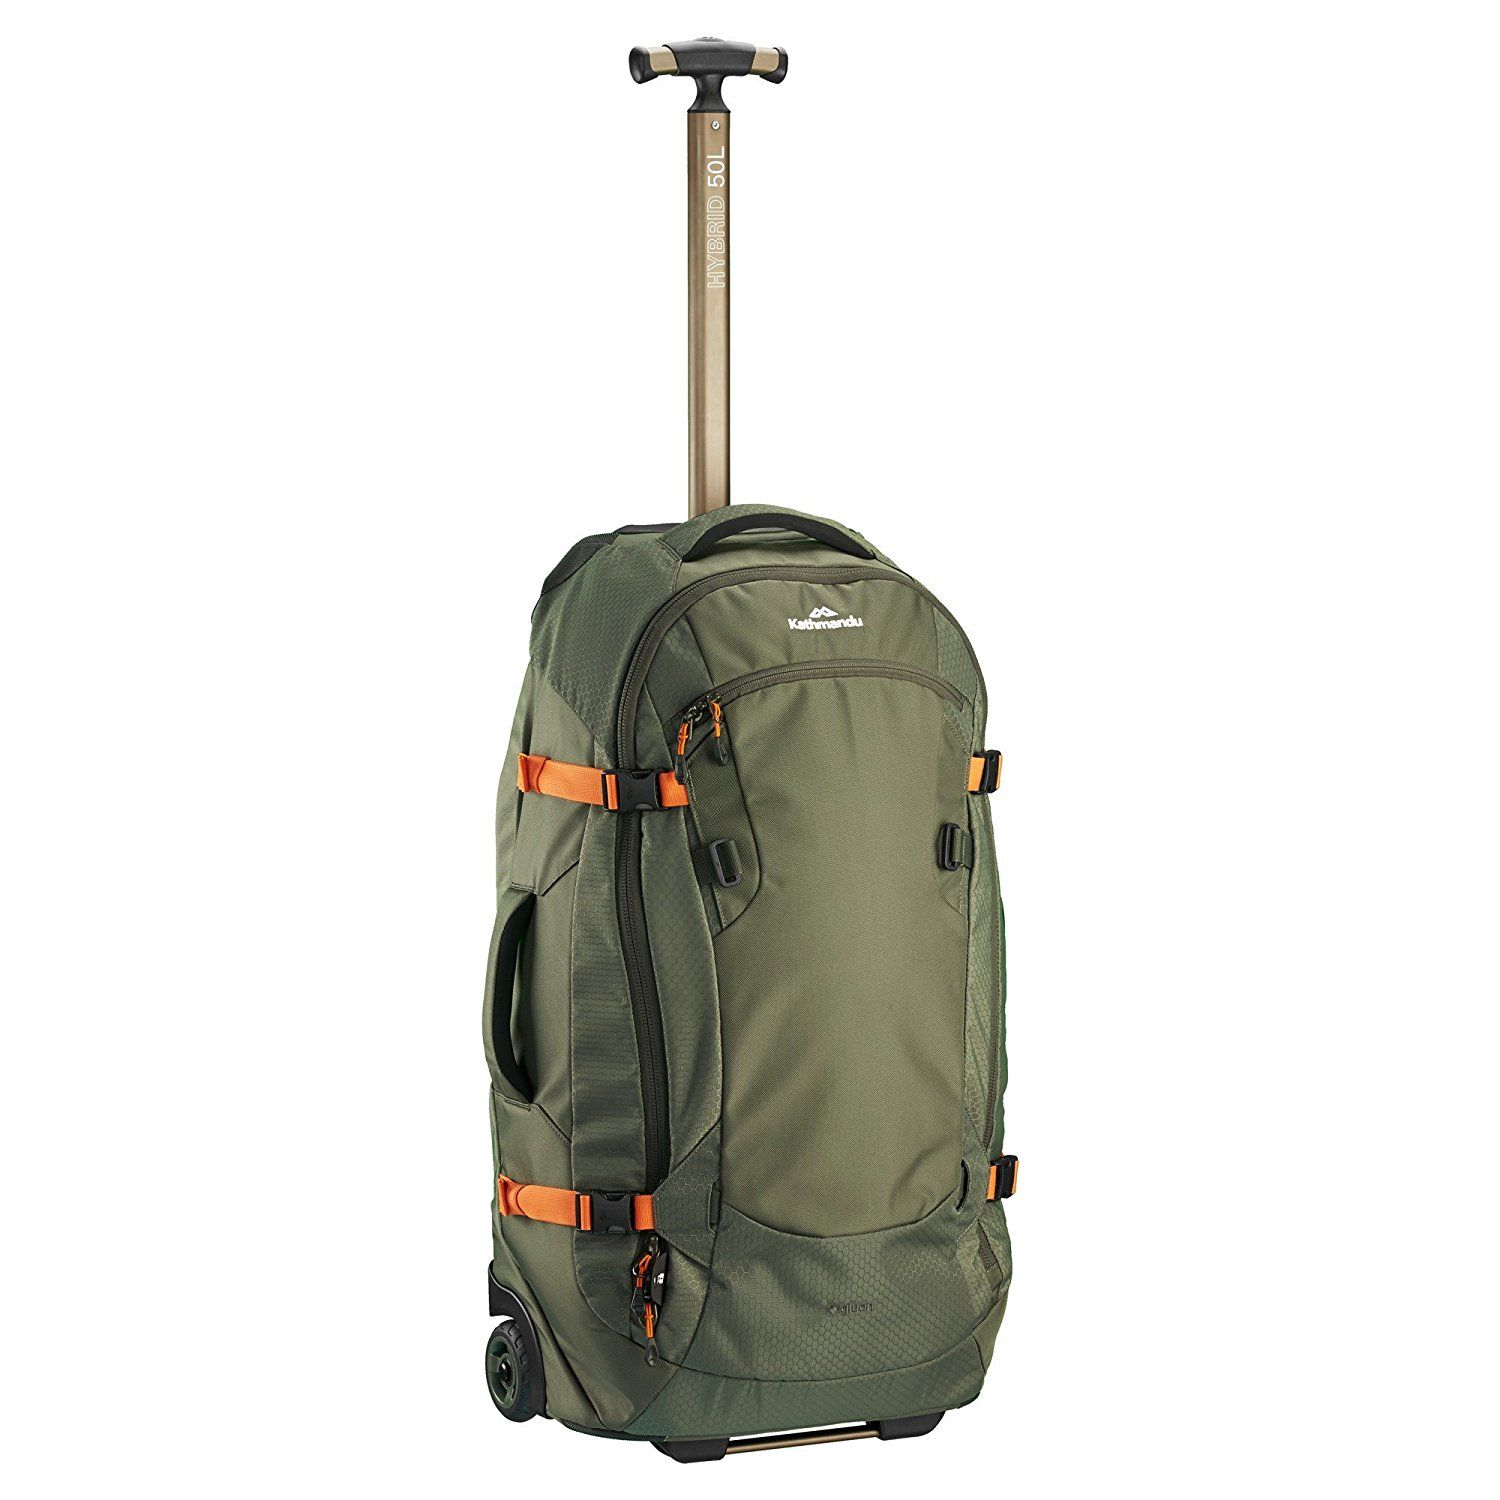 c98b648d83 Kathmandu Hybrid 50L Backpack Harness Wheeled Luggage Trolley v3 - 50LTR   Amazon.co.uk  Sports   Outdoors